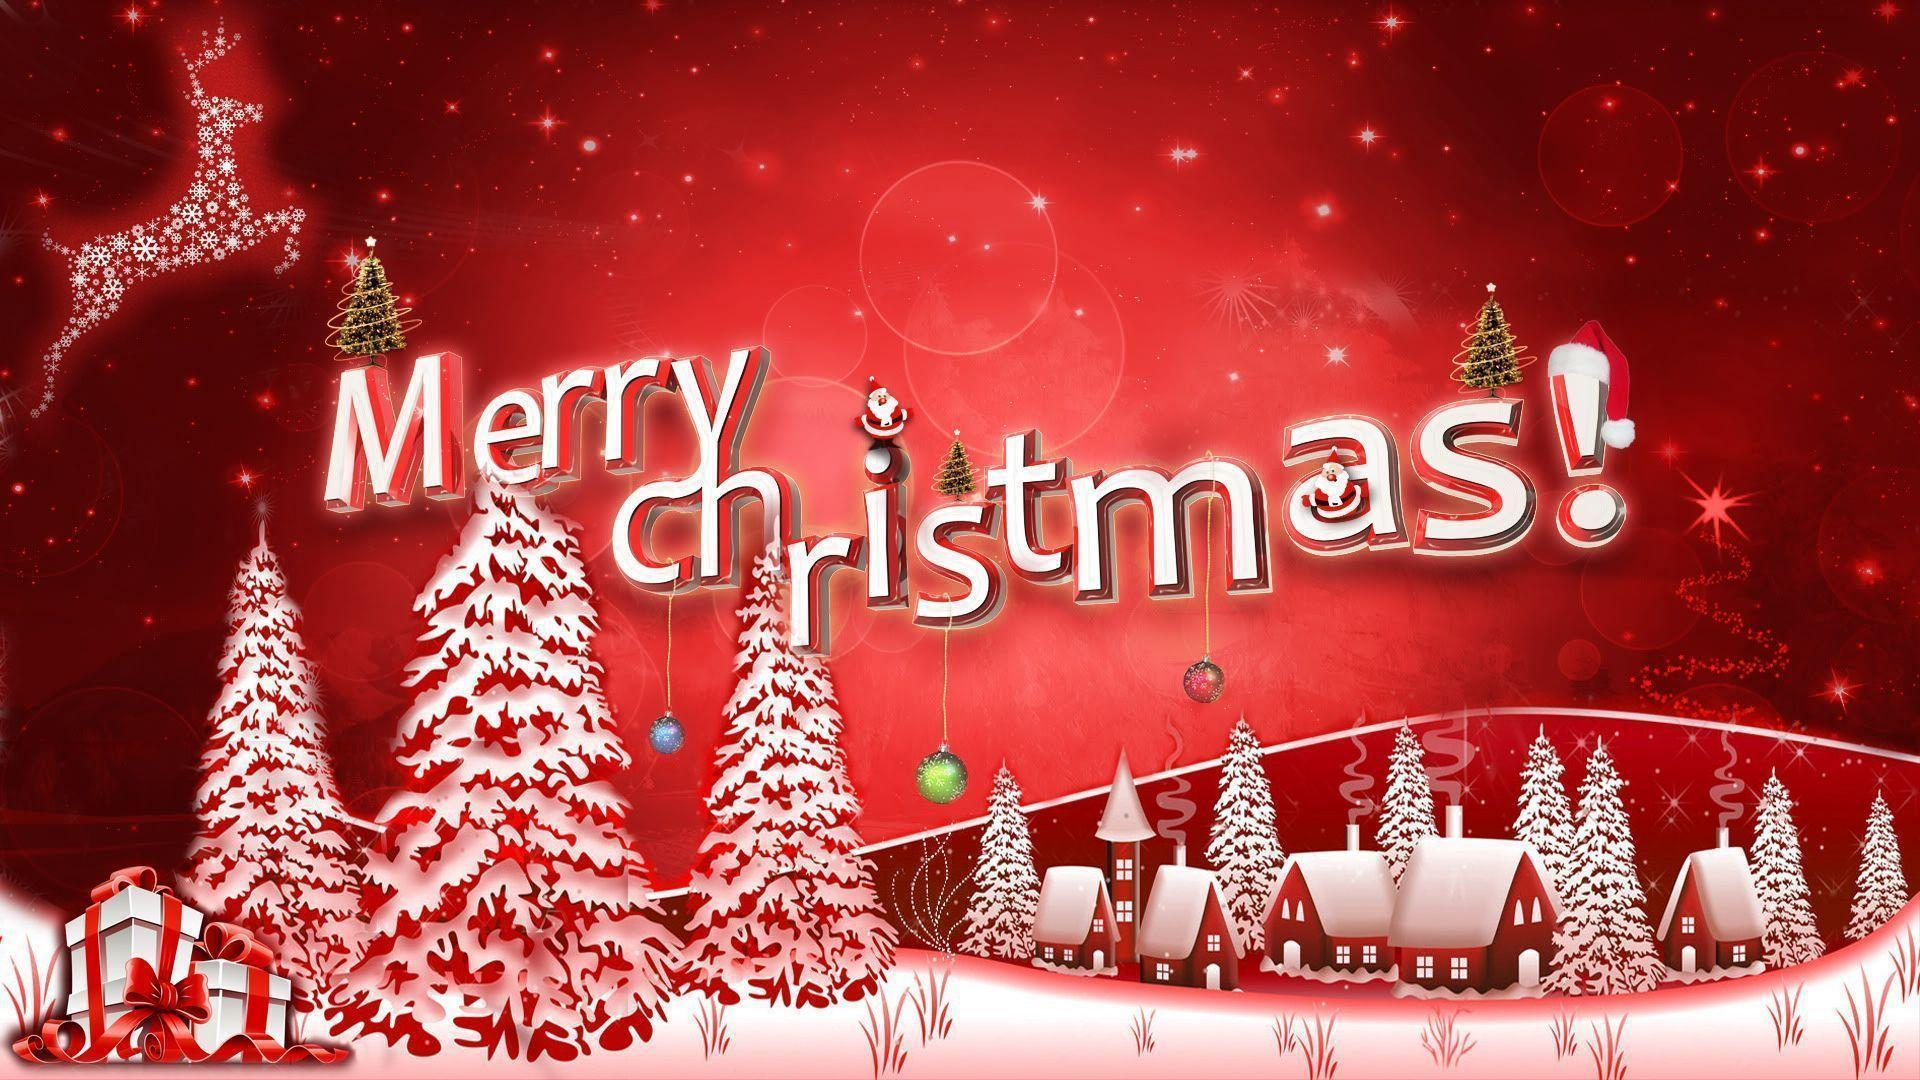 Merry Christmas Wallpaper.Merry Christmas Wallpapers 2017 Wallpaper Cave